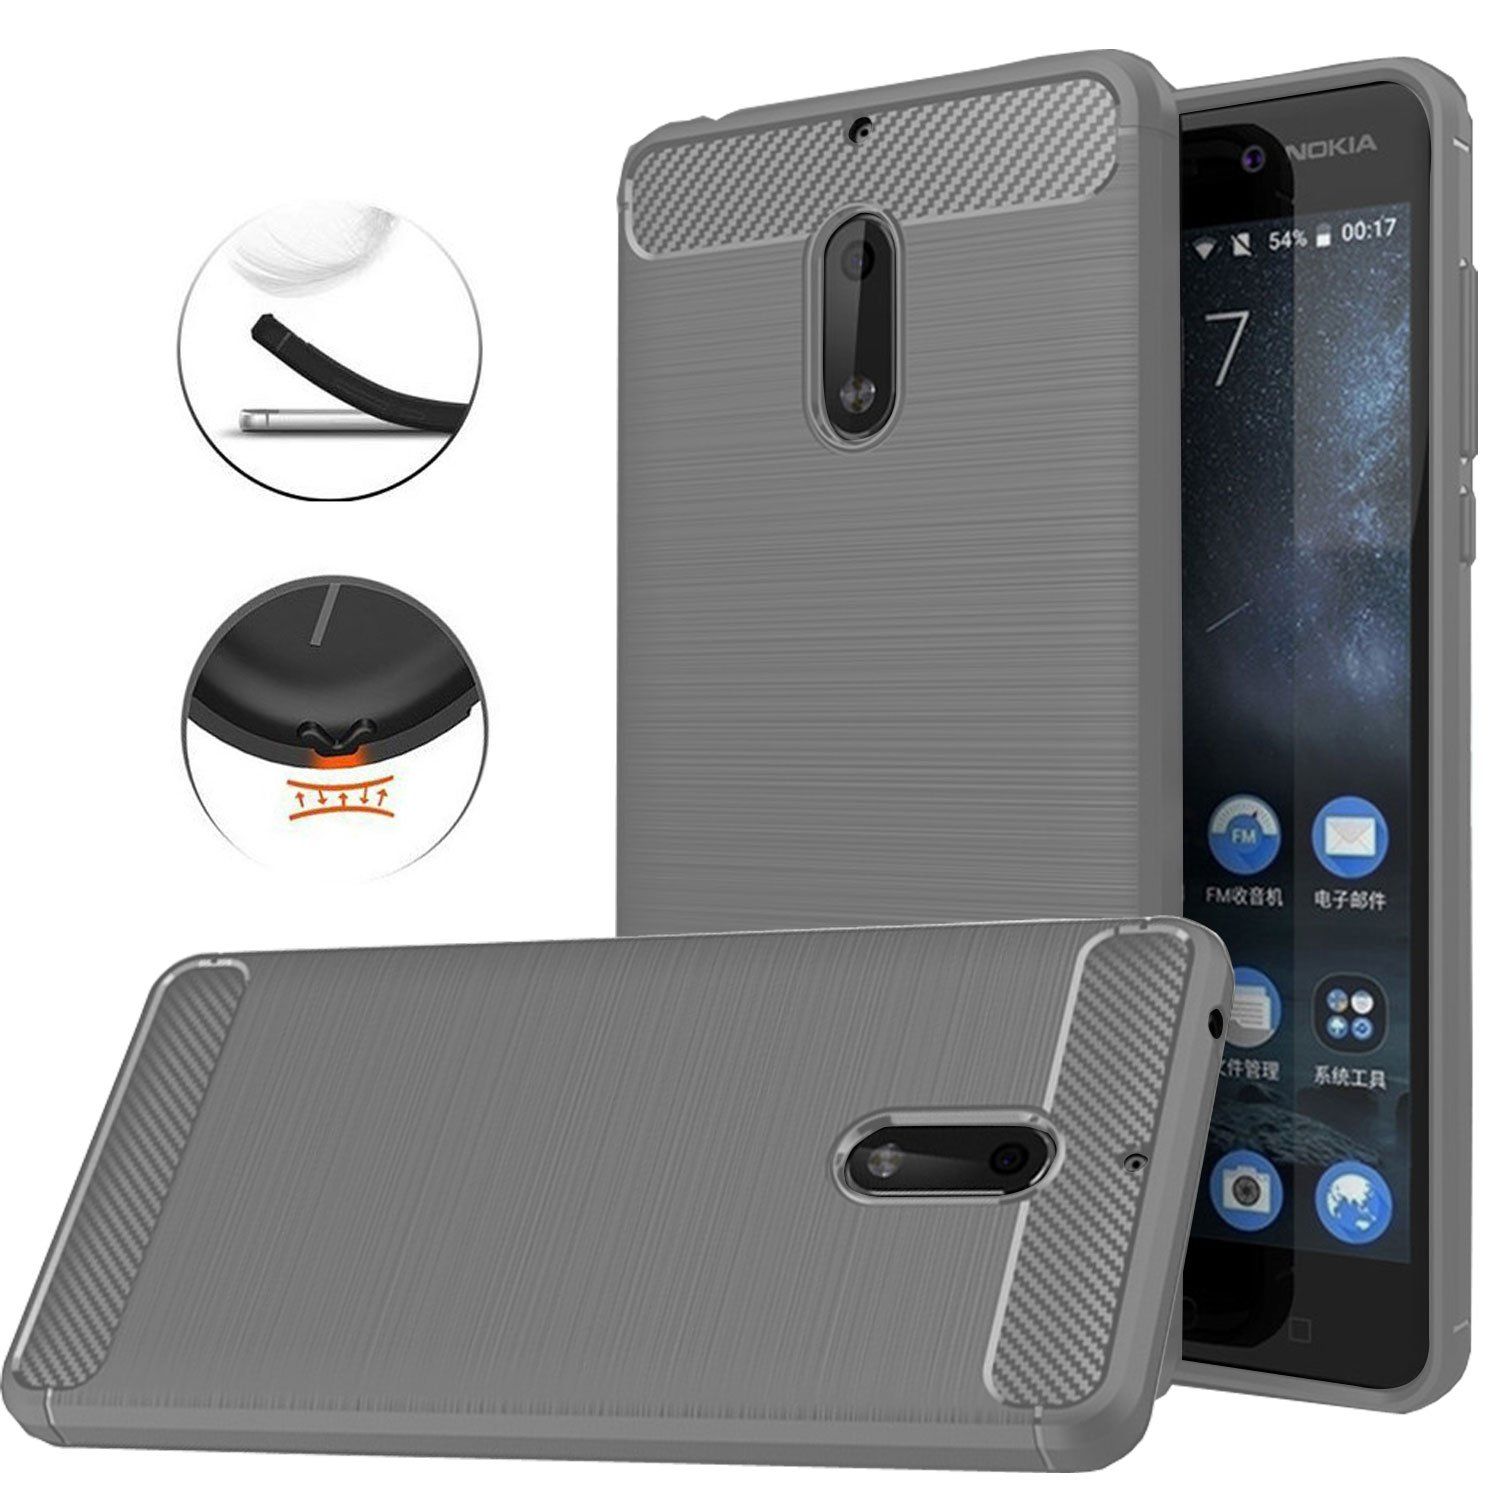 brand new 6c17b a3a5d Nokia 6 Case, Dretal [Shock Resistant] Flexible Soft TPU Brushed  Anti-fingerprint Full-body Protective Case Cover For Nokia 6 (5.5